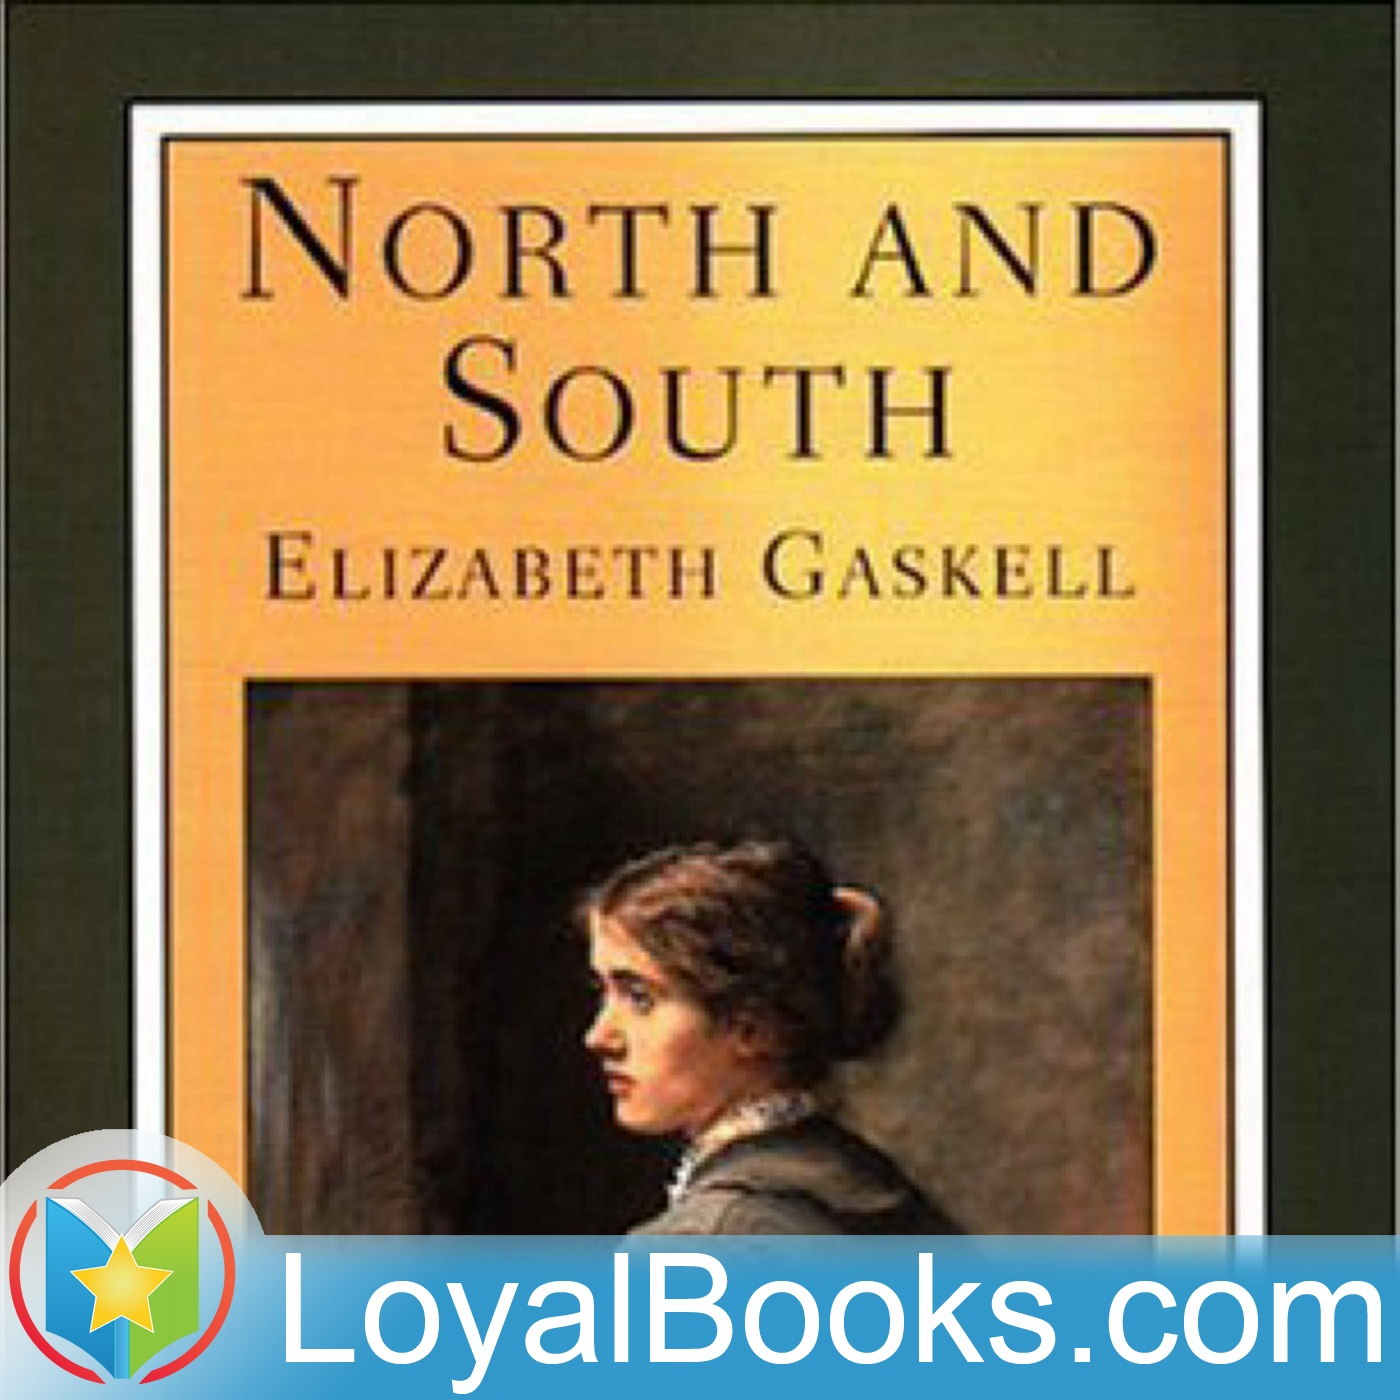 north and south by elizabeth gaskell North and south is a social novel by english writer elizabeth gaskell along with wives and daughters (1865) and cranford (1853), it is one of her best known novels and has been adapted for  view product.